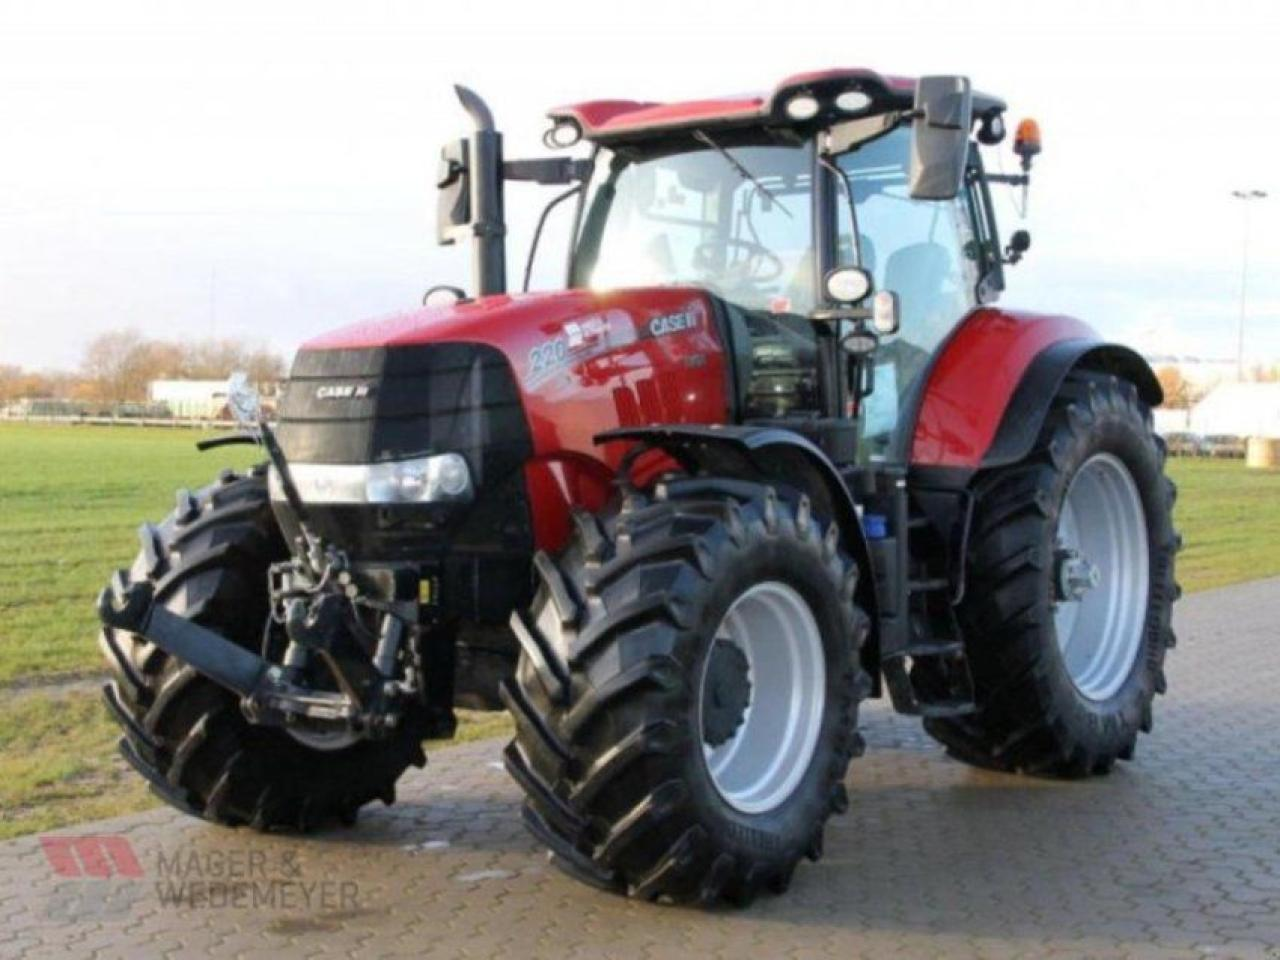 inflación Ocupar Lamer  Case-IH PUMA CVX 220 wheel tractor from Germany for sale at Truck1, ID:  4175706